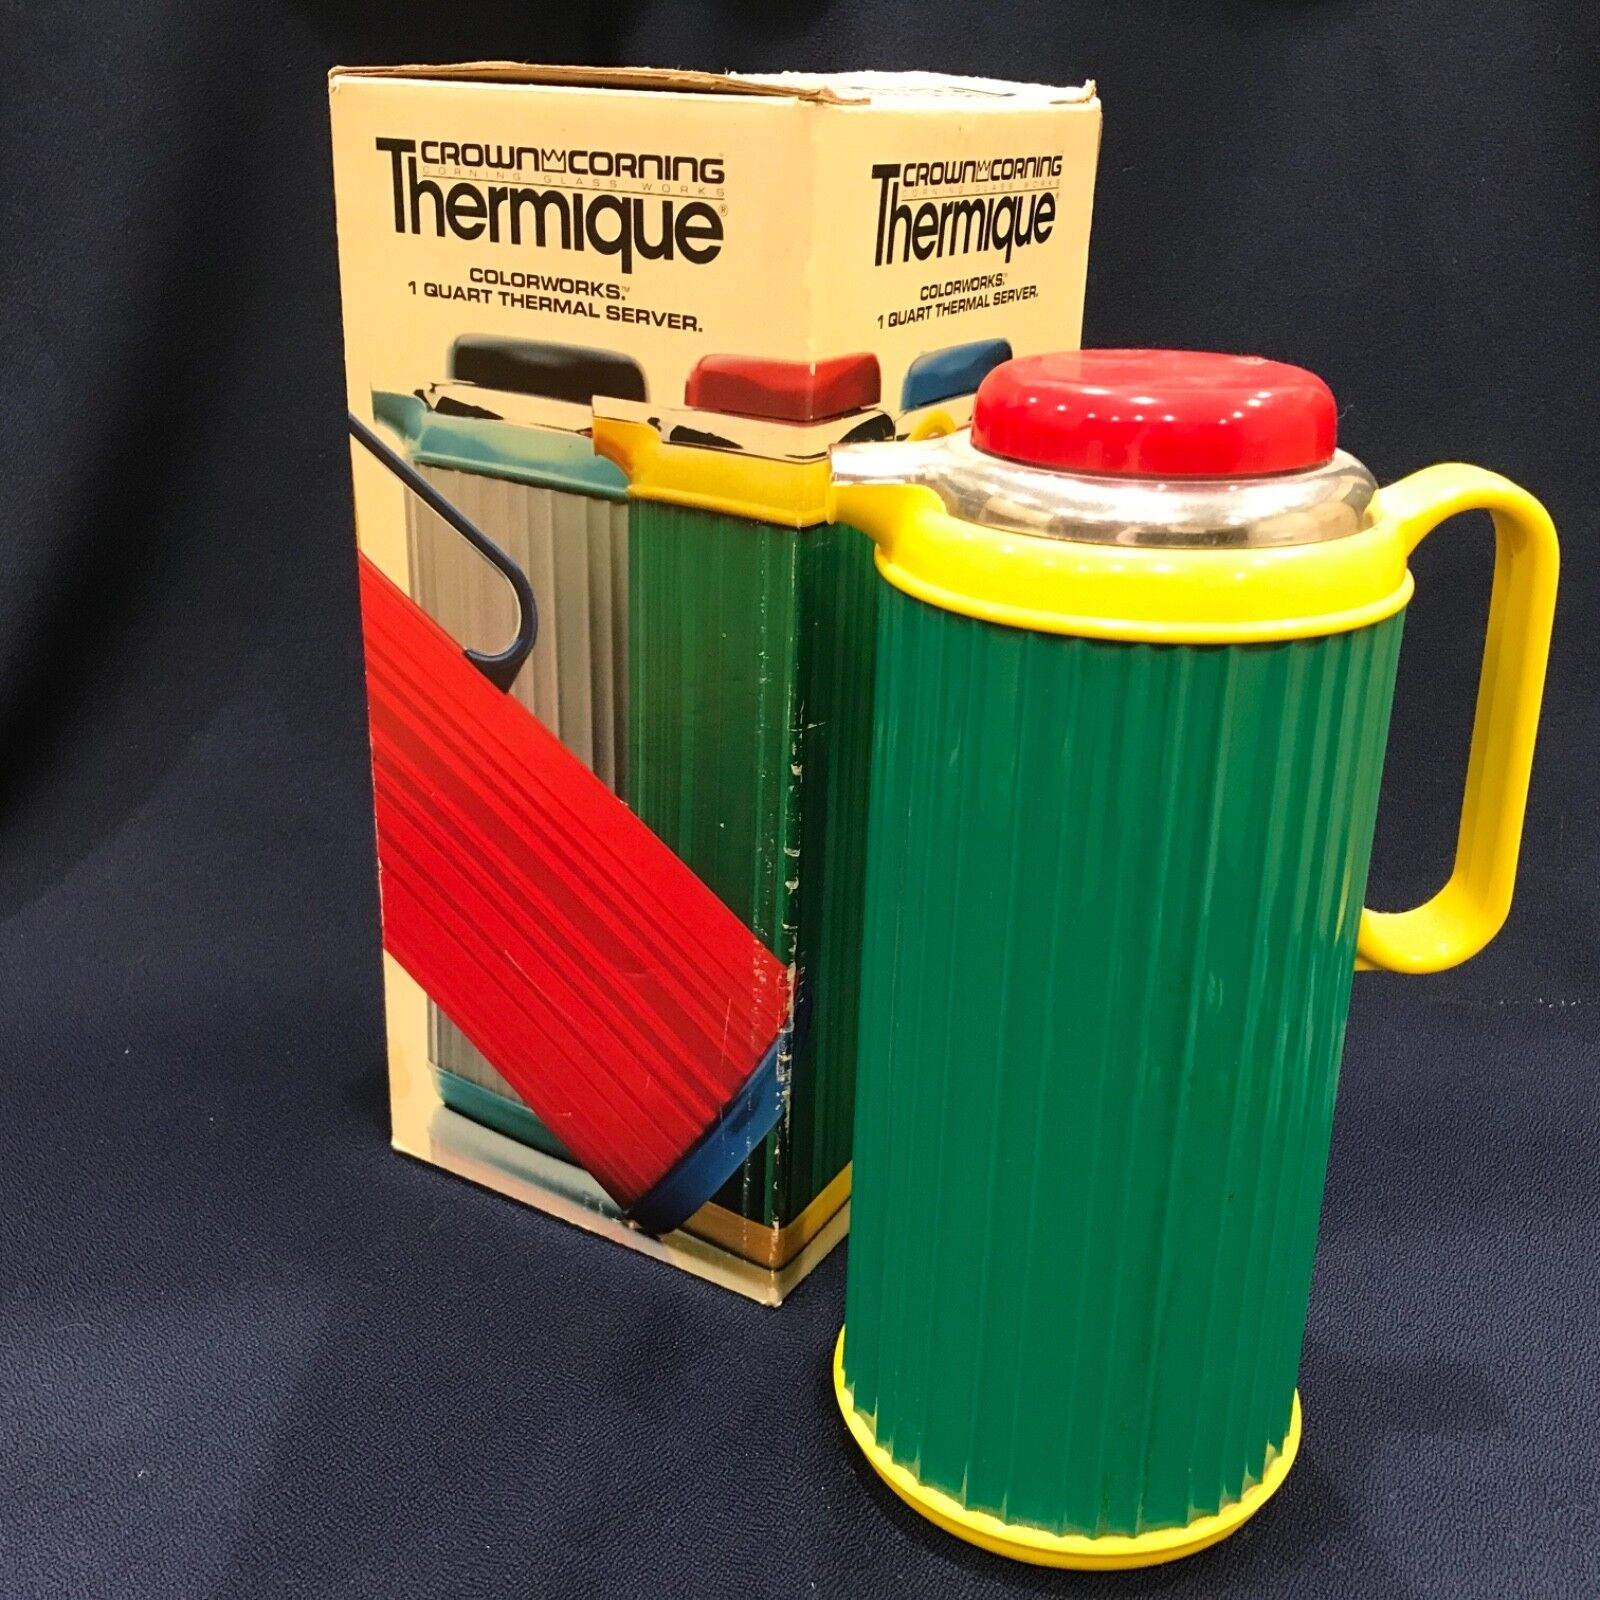 VINTAGE BOX & CROWN CORNING THERMIQUE THERMOS COFFEE 1 QT CLEAN GREEN YELLOW RED